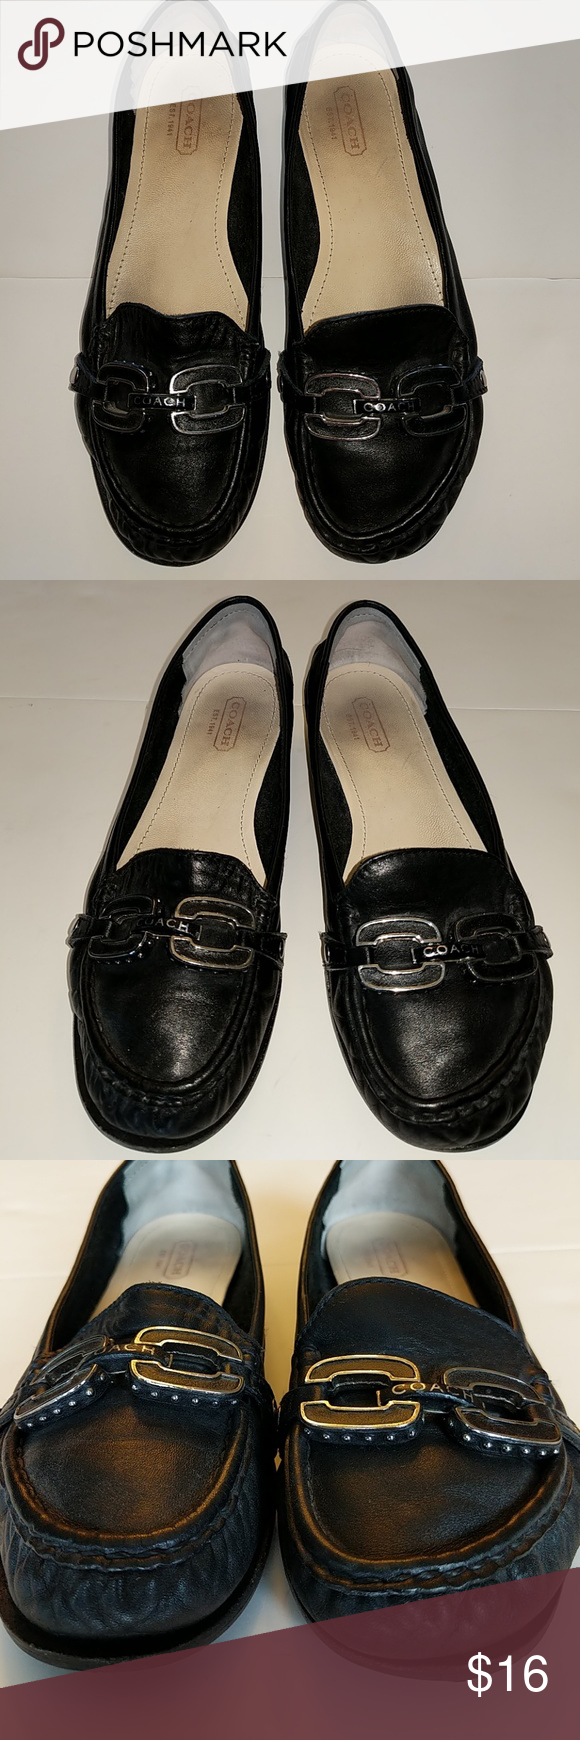 5283c5cd4d5 reduced coach black flat shoes a34d3 45cce